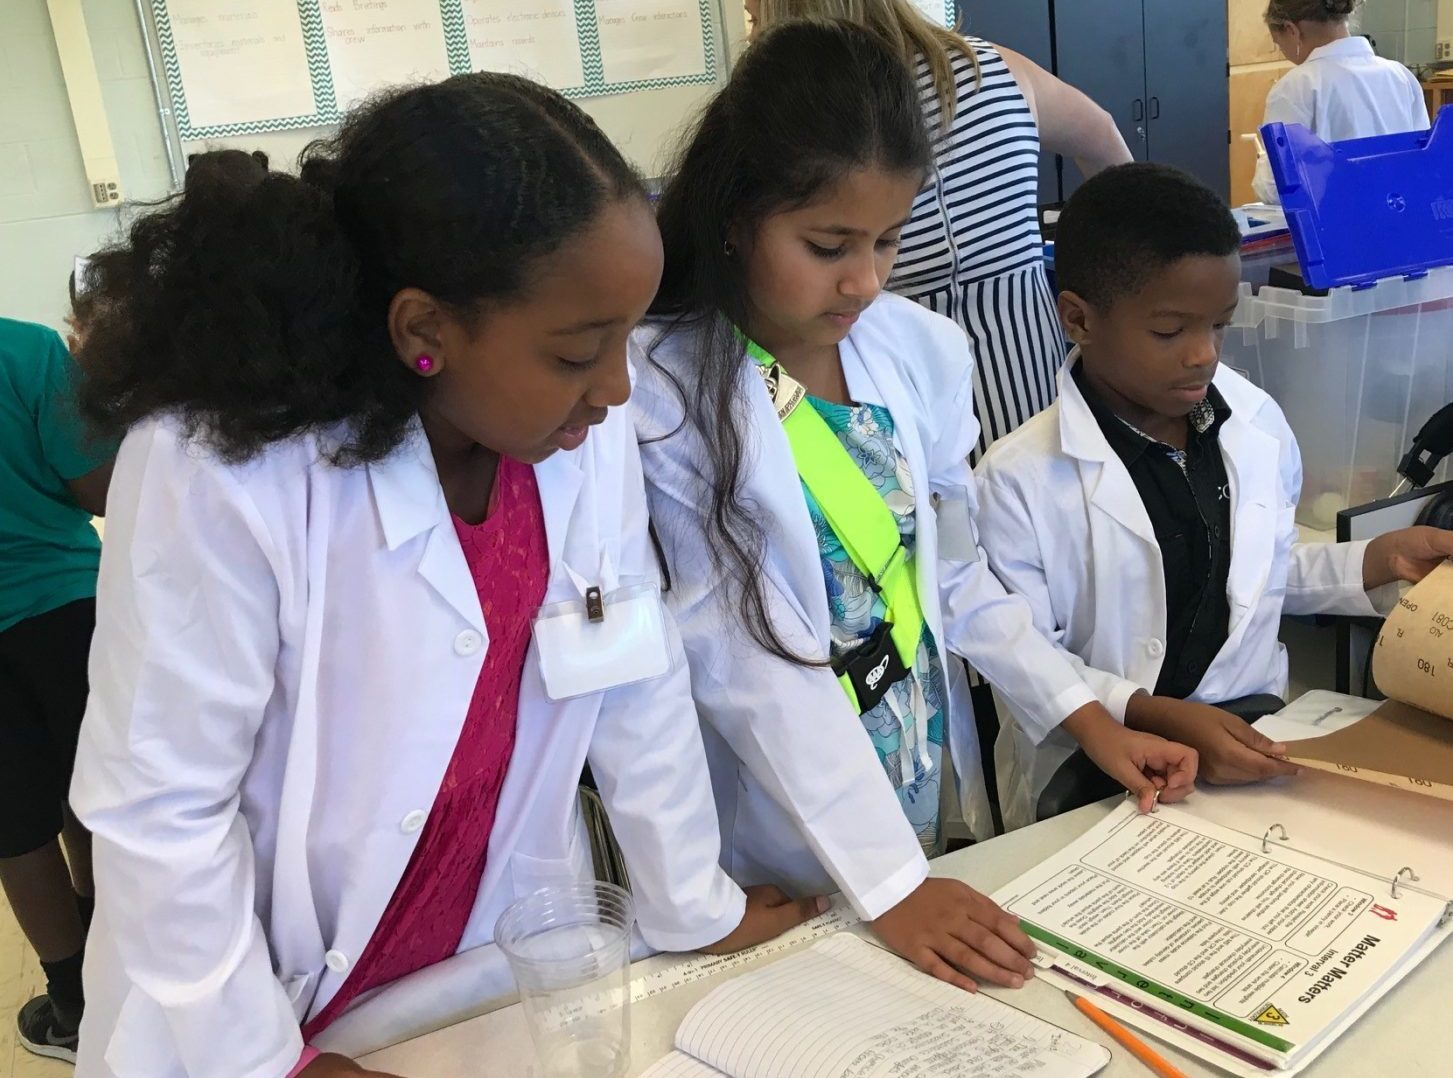 Picture of students conducting a science experiment in class.